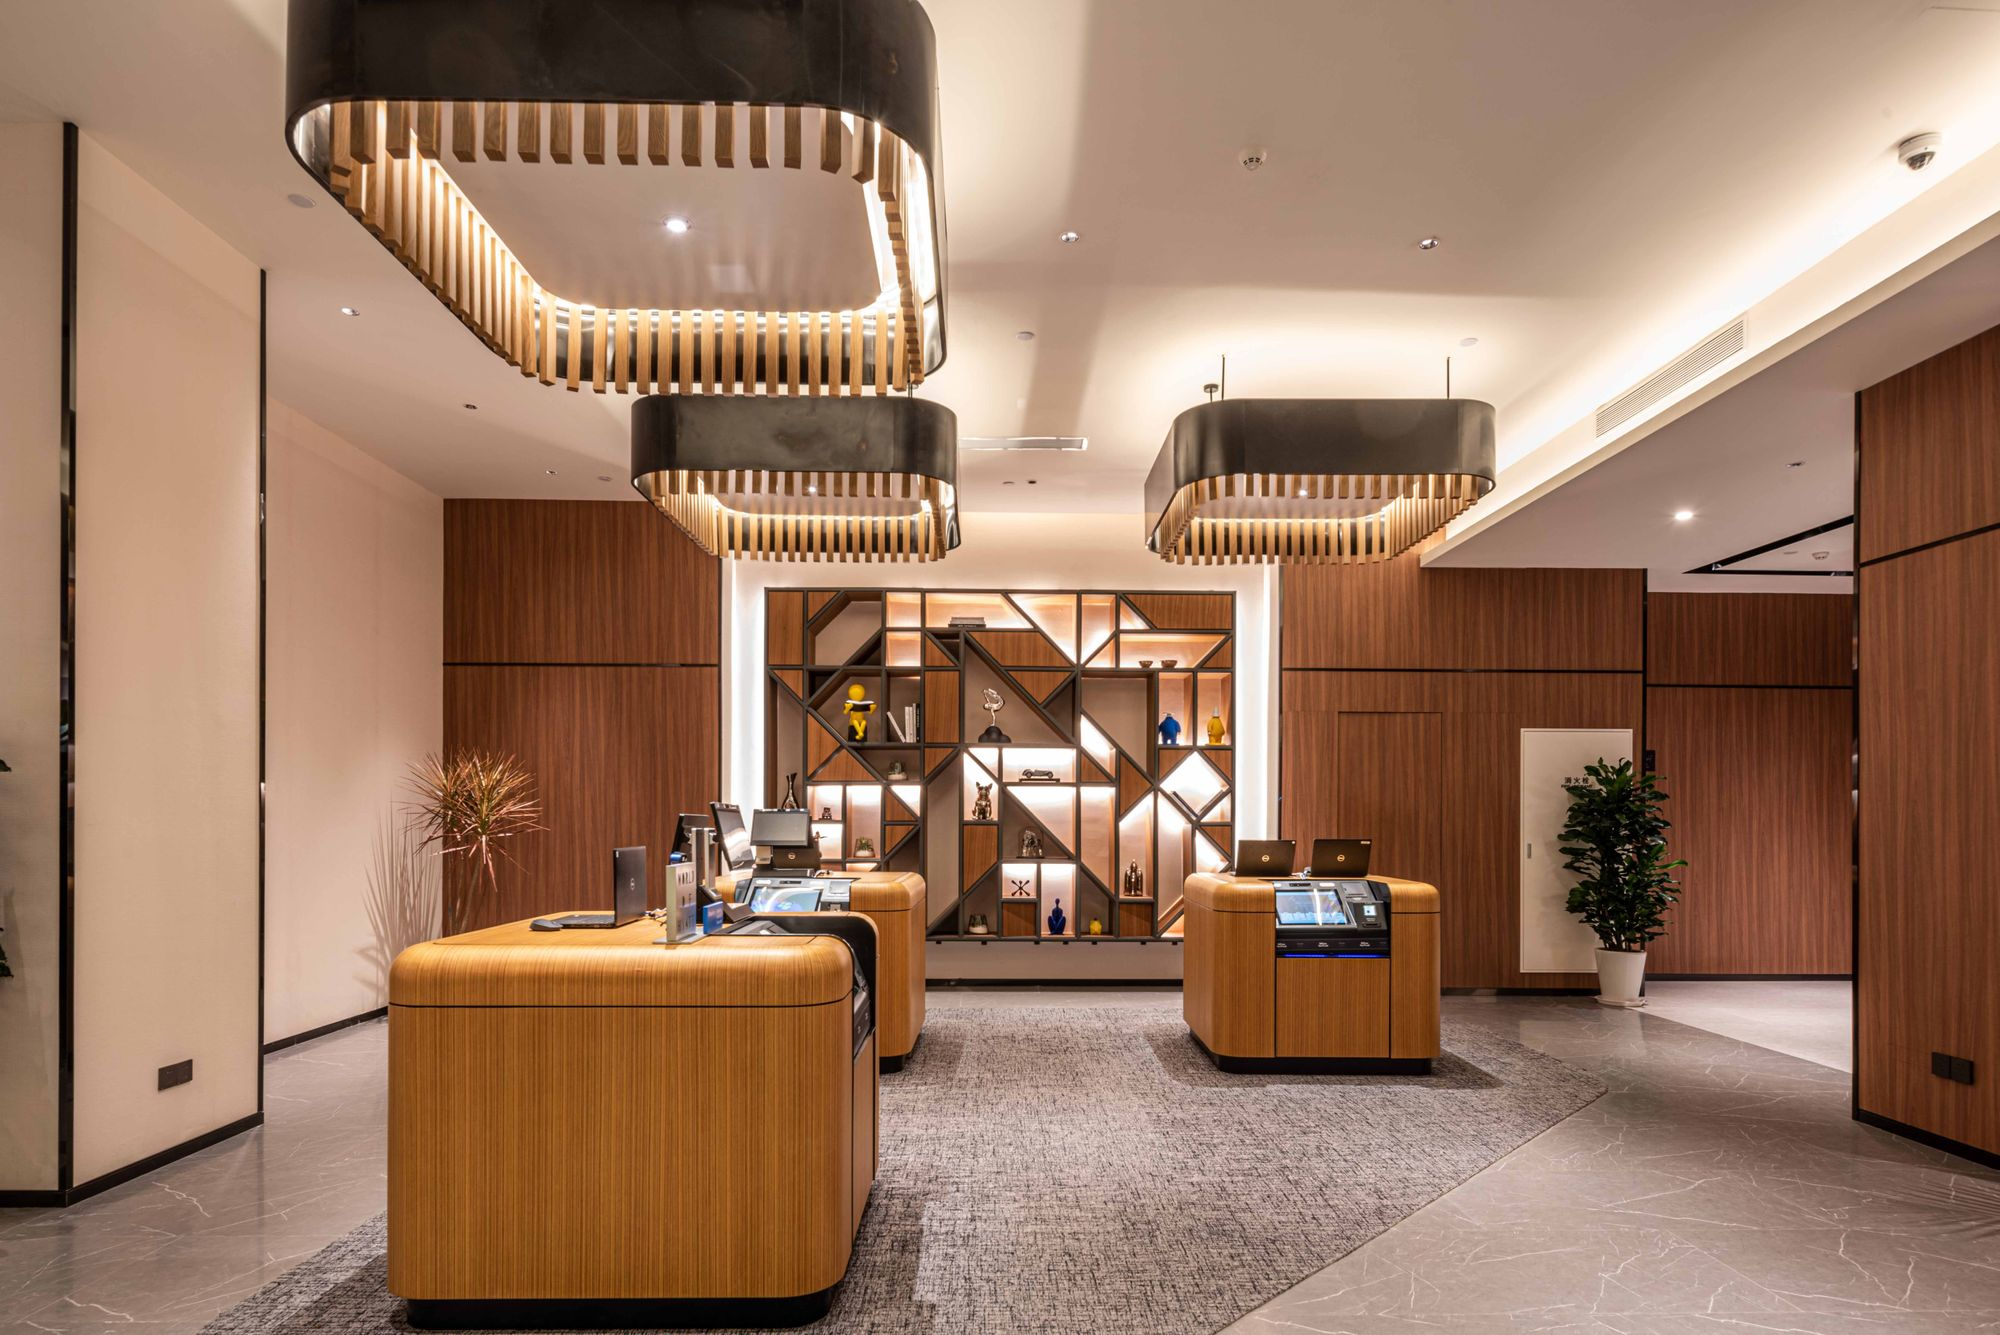 Hyatt Opens First Five UrCove Hotels in China